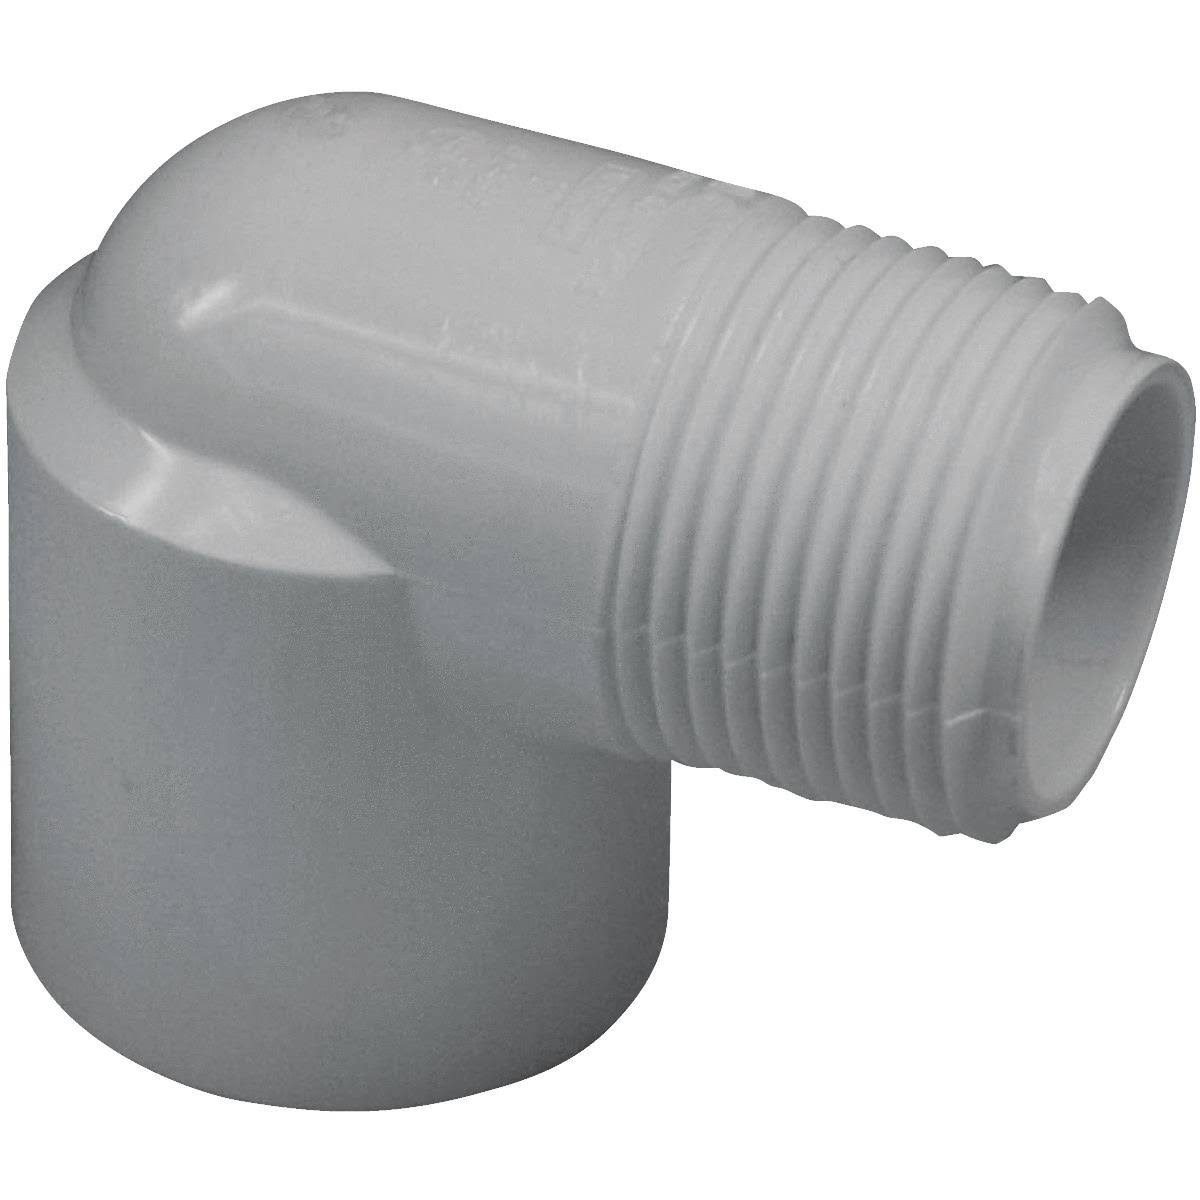 Genova PVC Street Elbow - 90 Degree, White